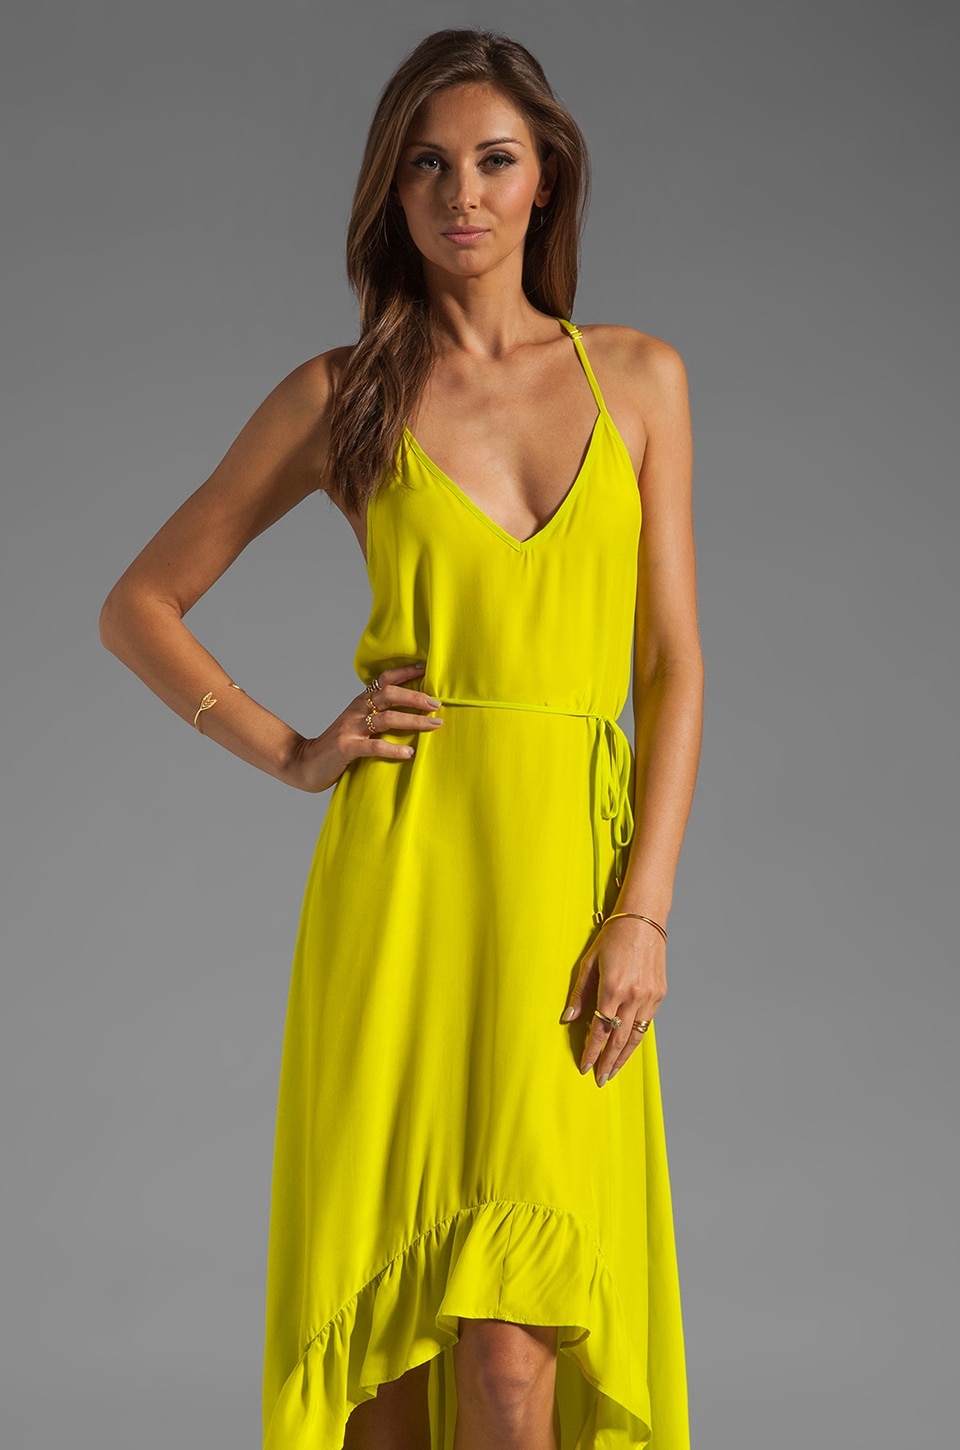 Karina Grimaldi Romantic Solid Maxi Dress in Neon Yellow